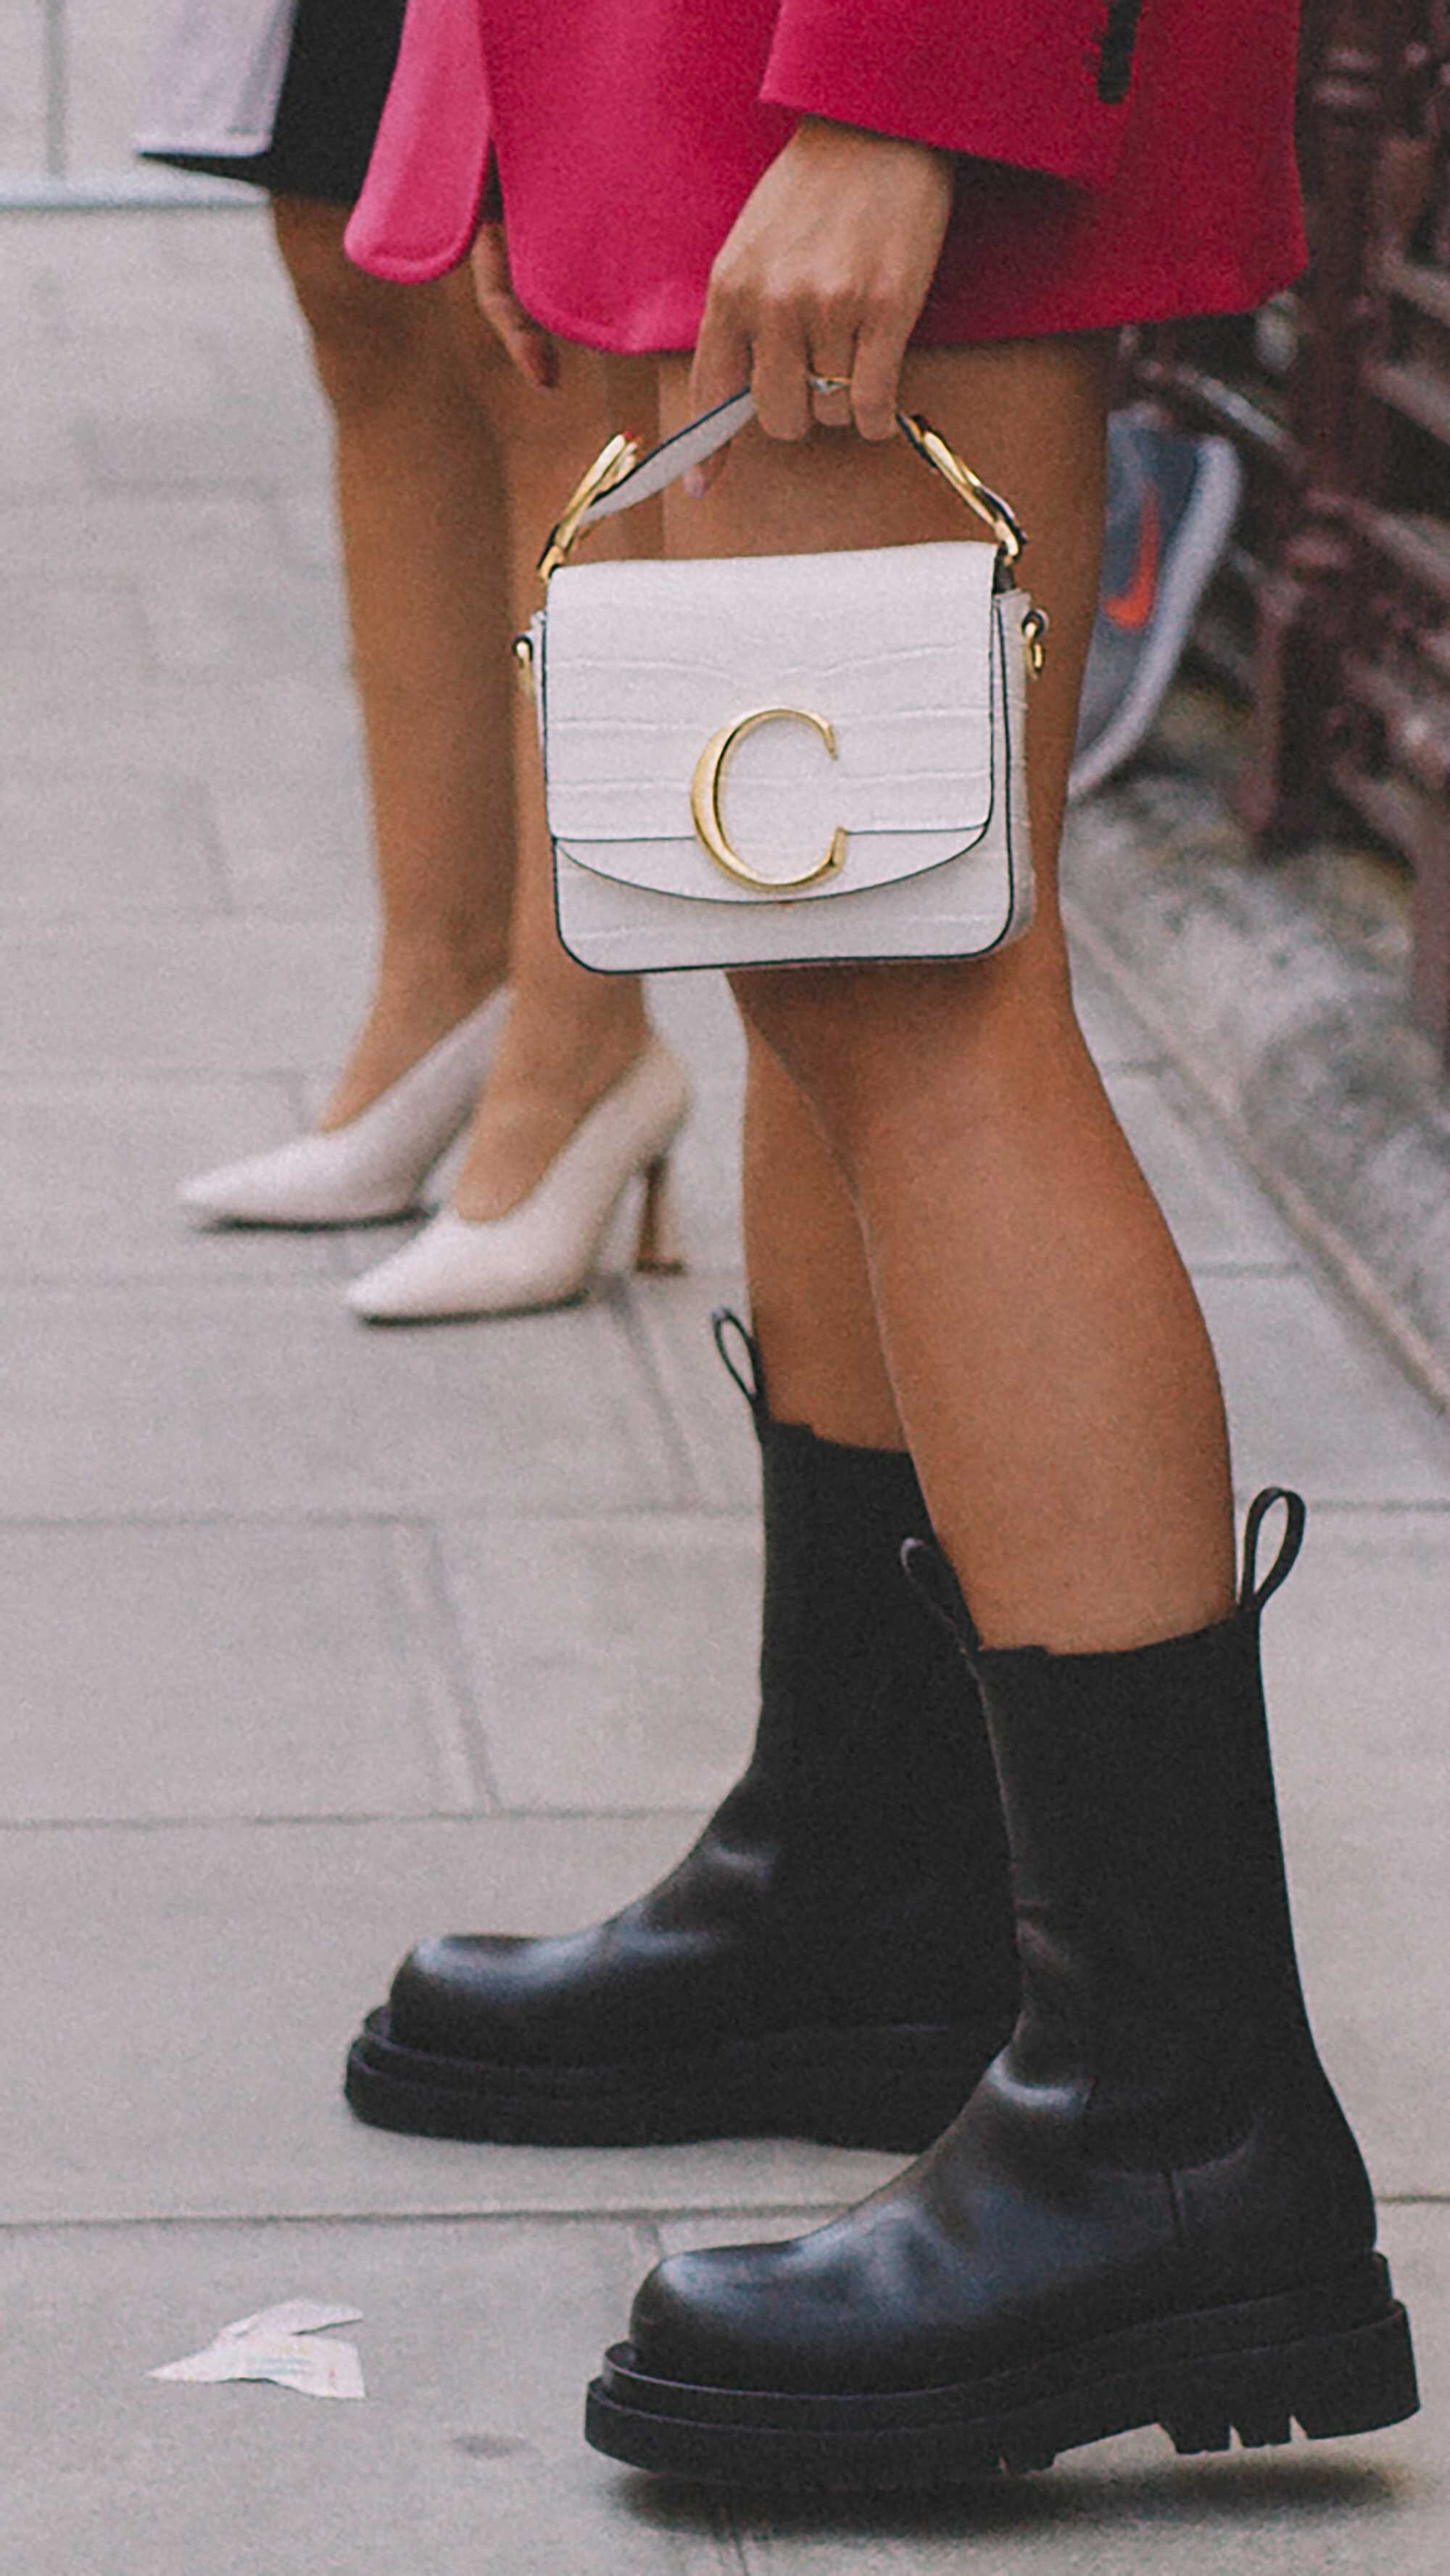 Best outfits of London Fashion Week street style 2019 -67.jpg